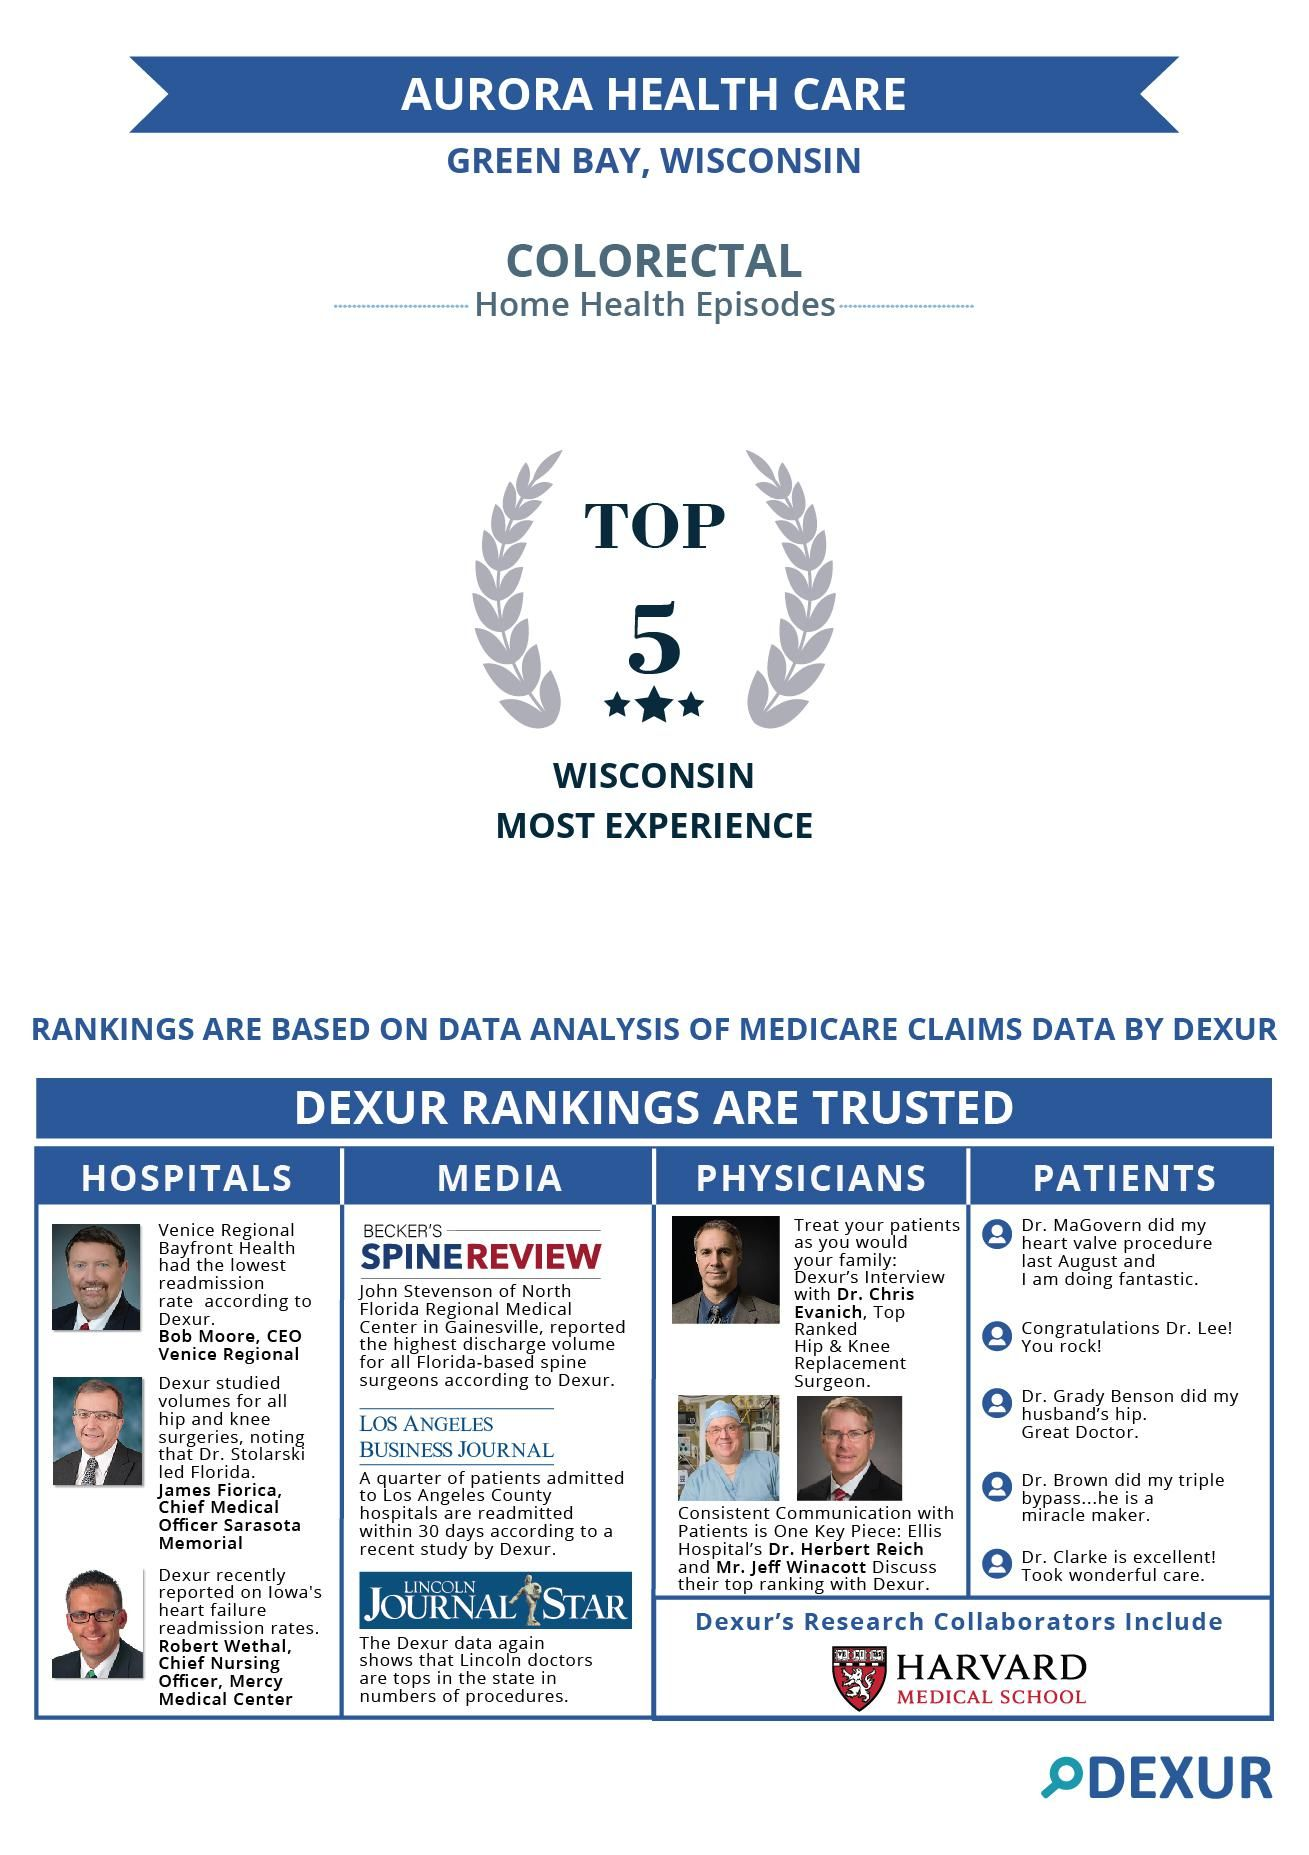 Aurora health care is the most experienced home health